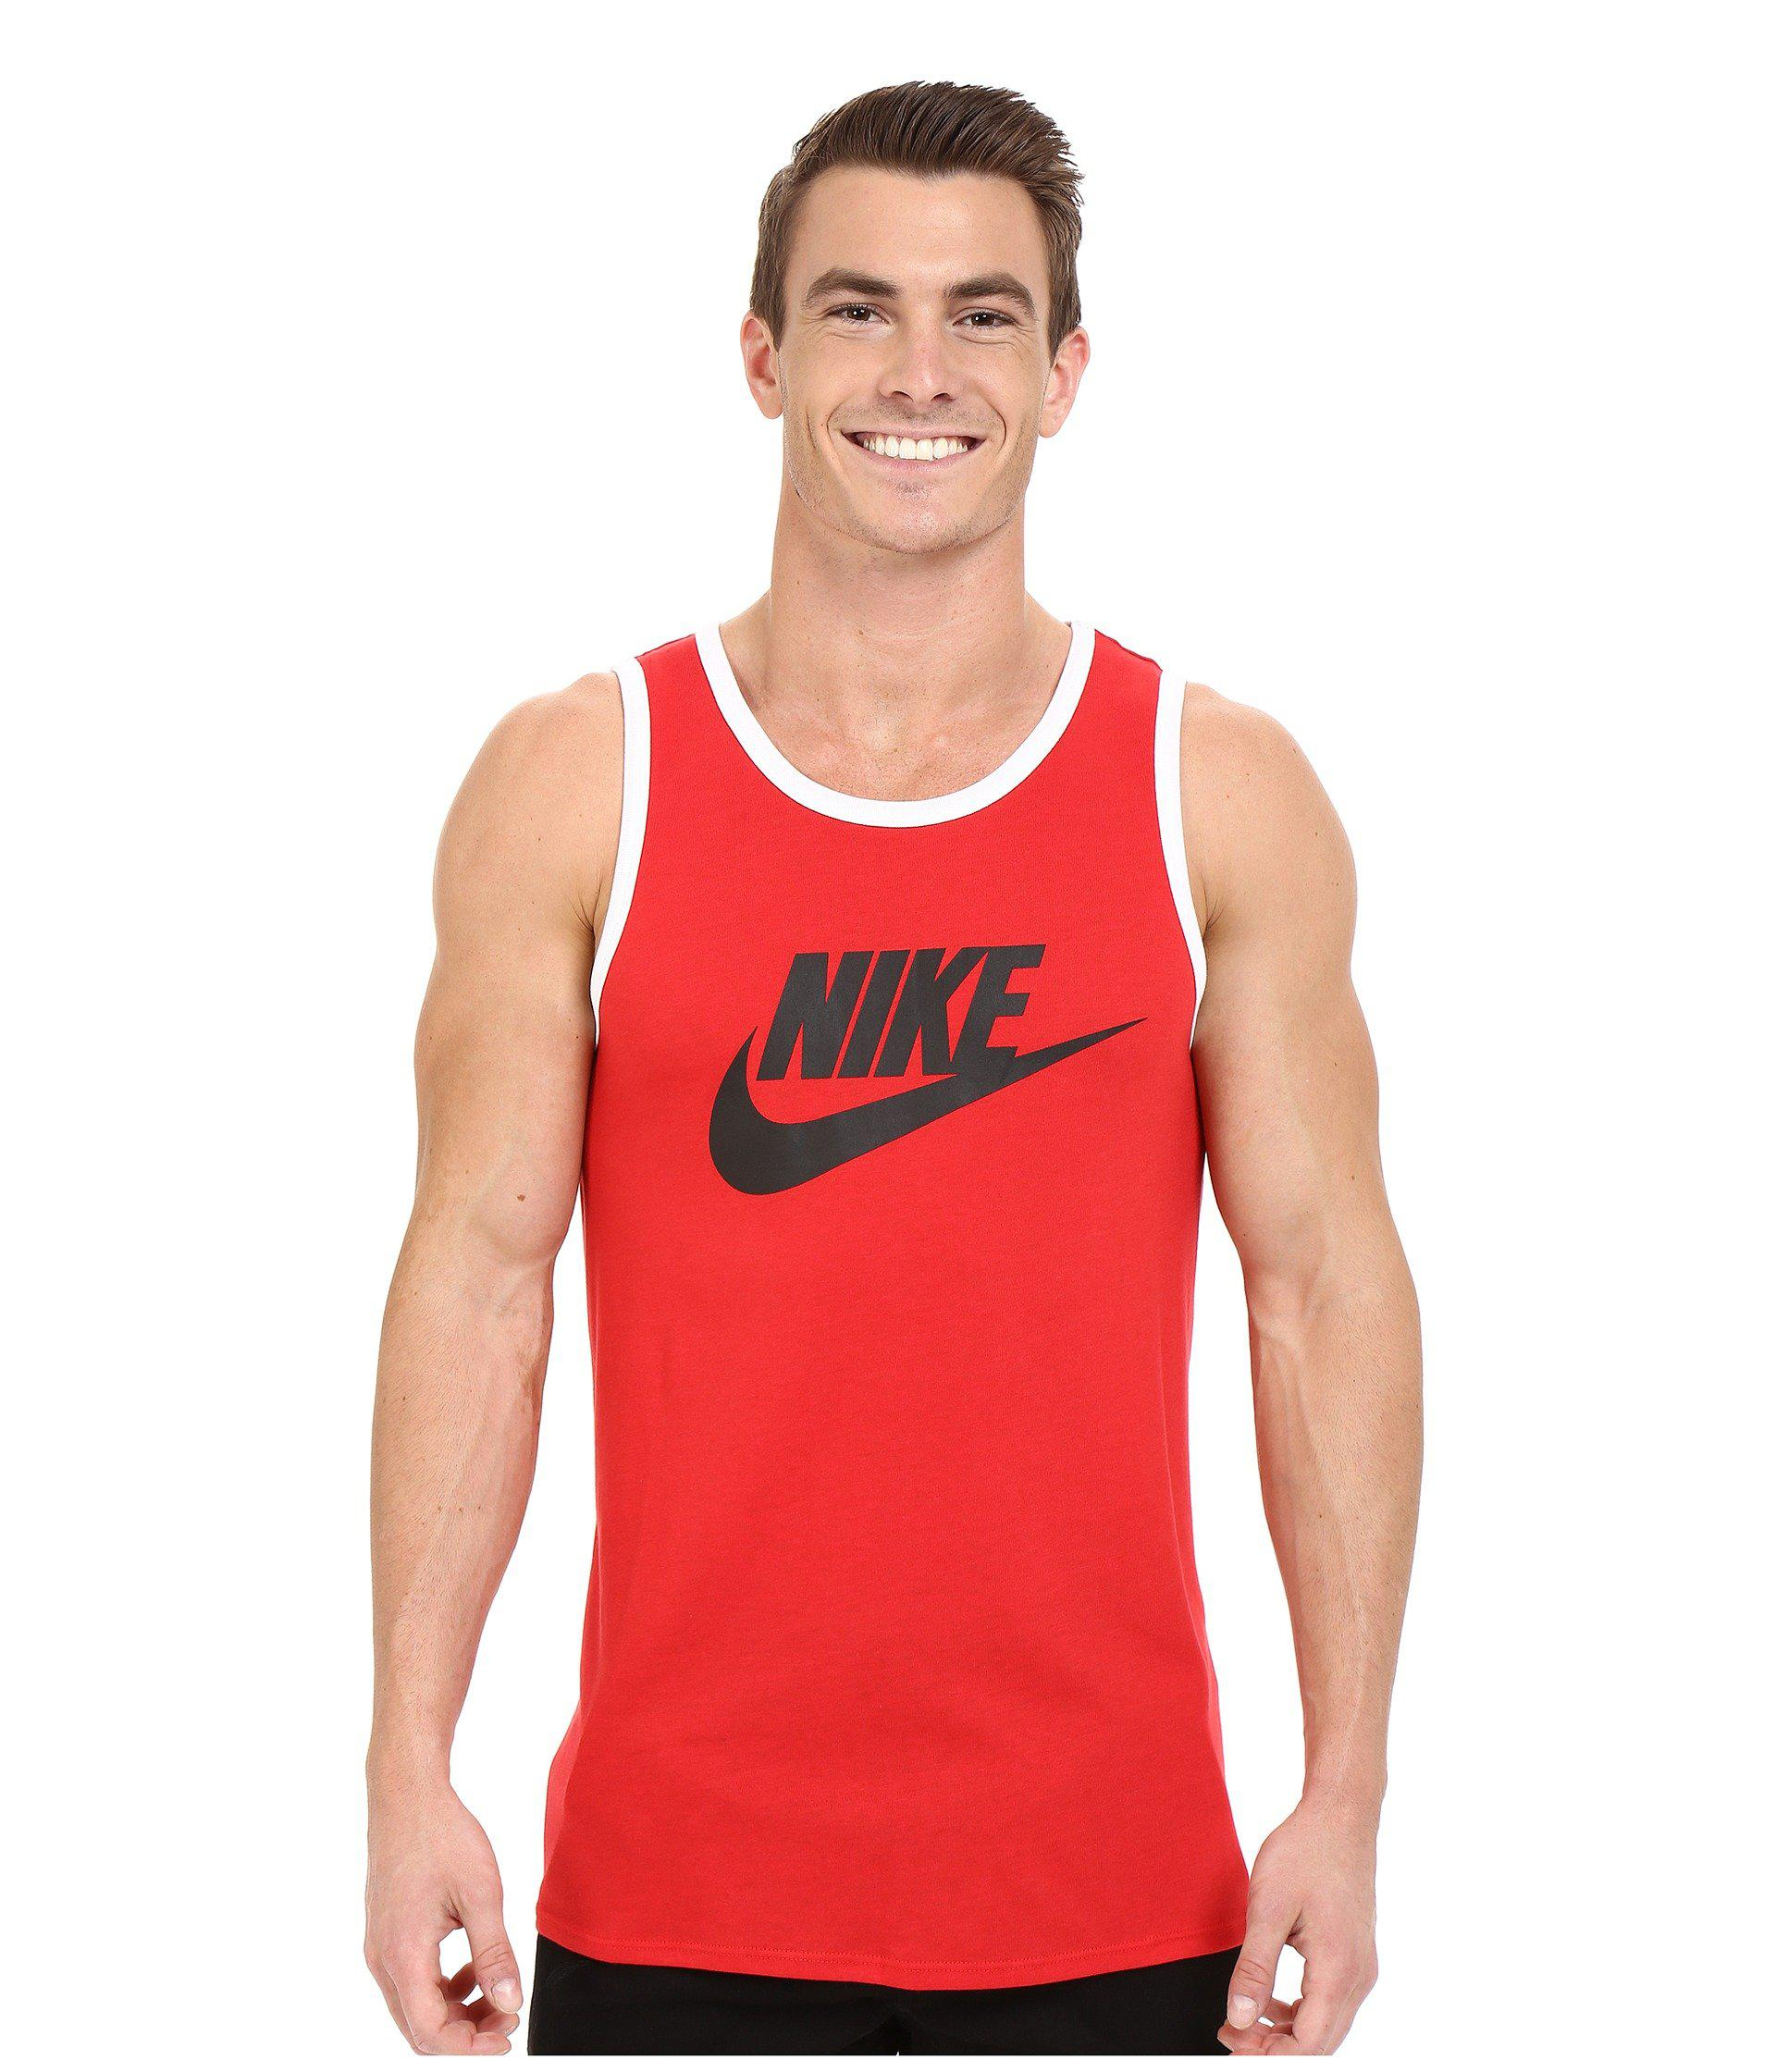 cb8c609cf5ea5f Mens Sleeveless Shirts Nike – EDGE Engineering and Consulting Limited